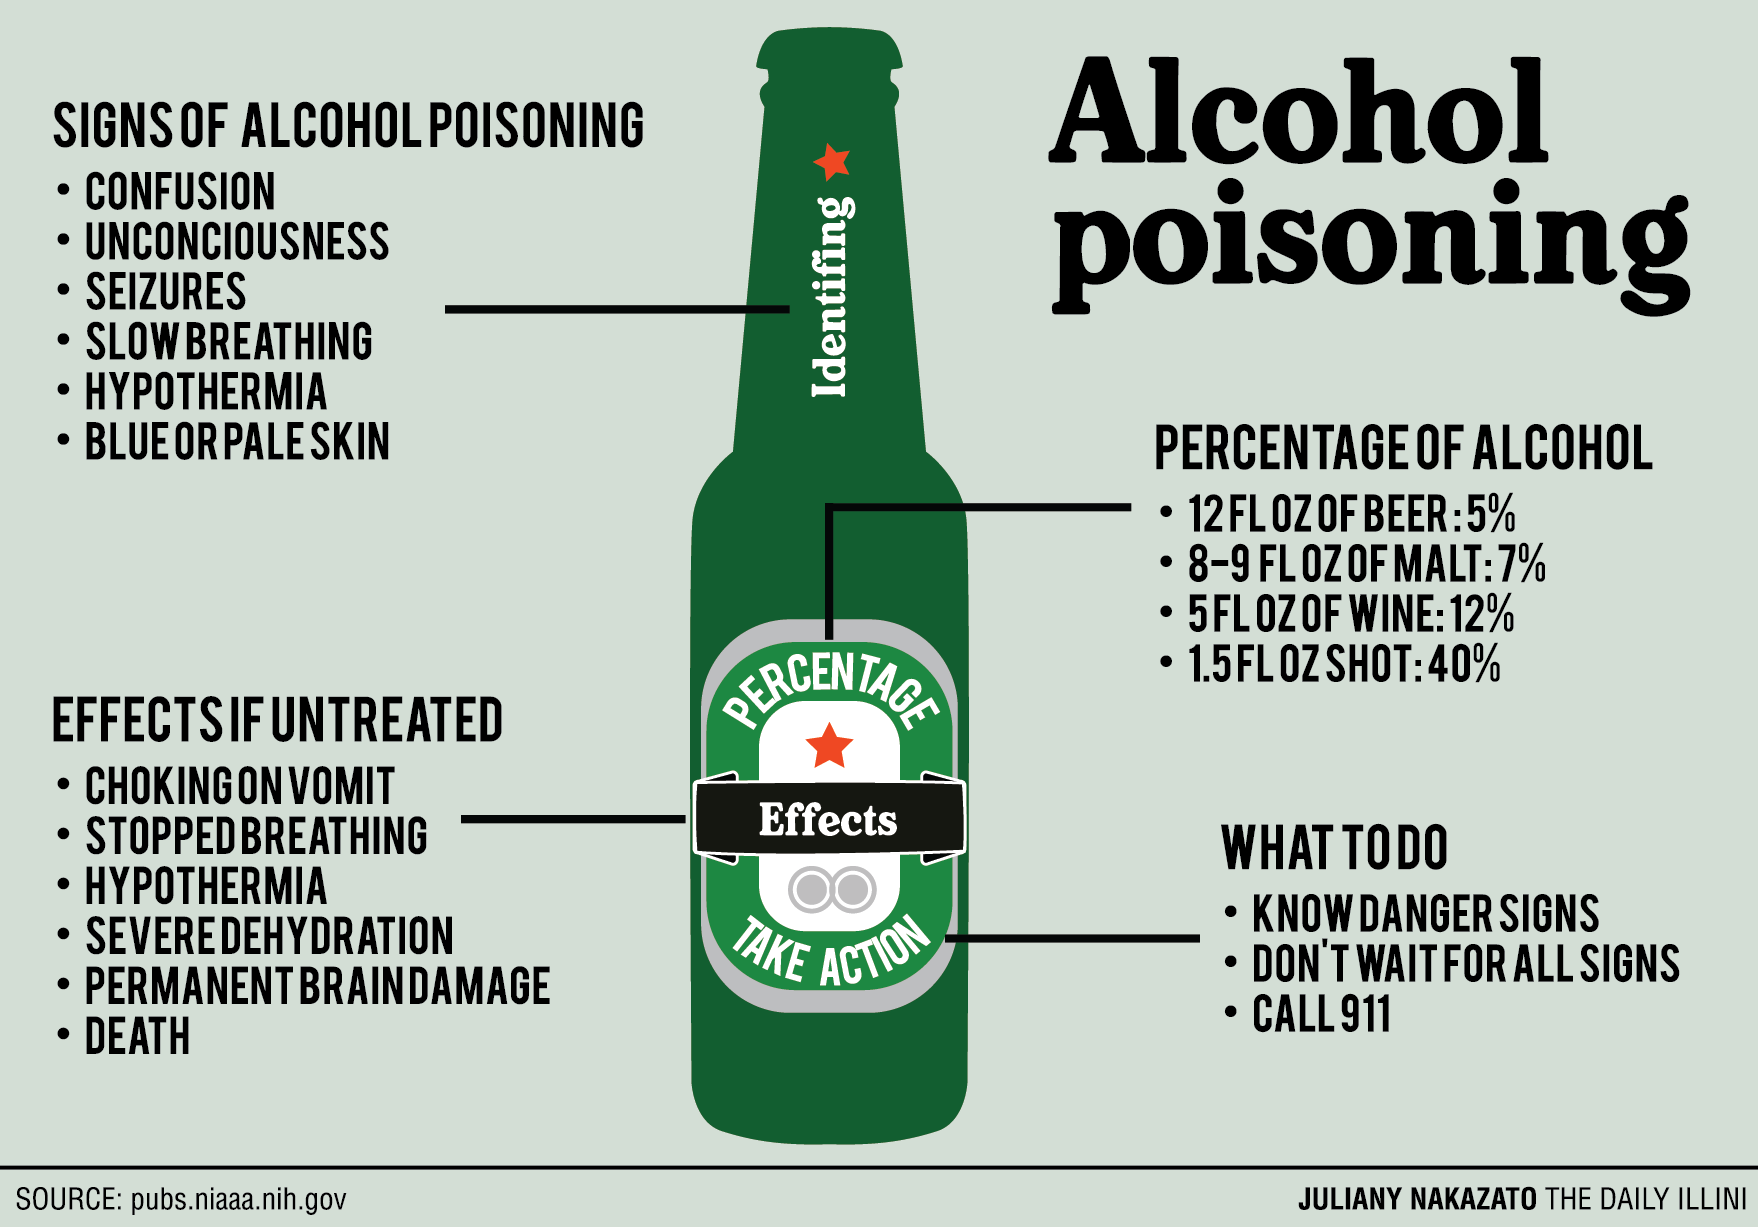 What to do with alcohol poisoning